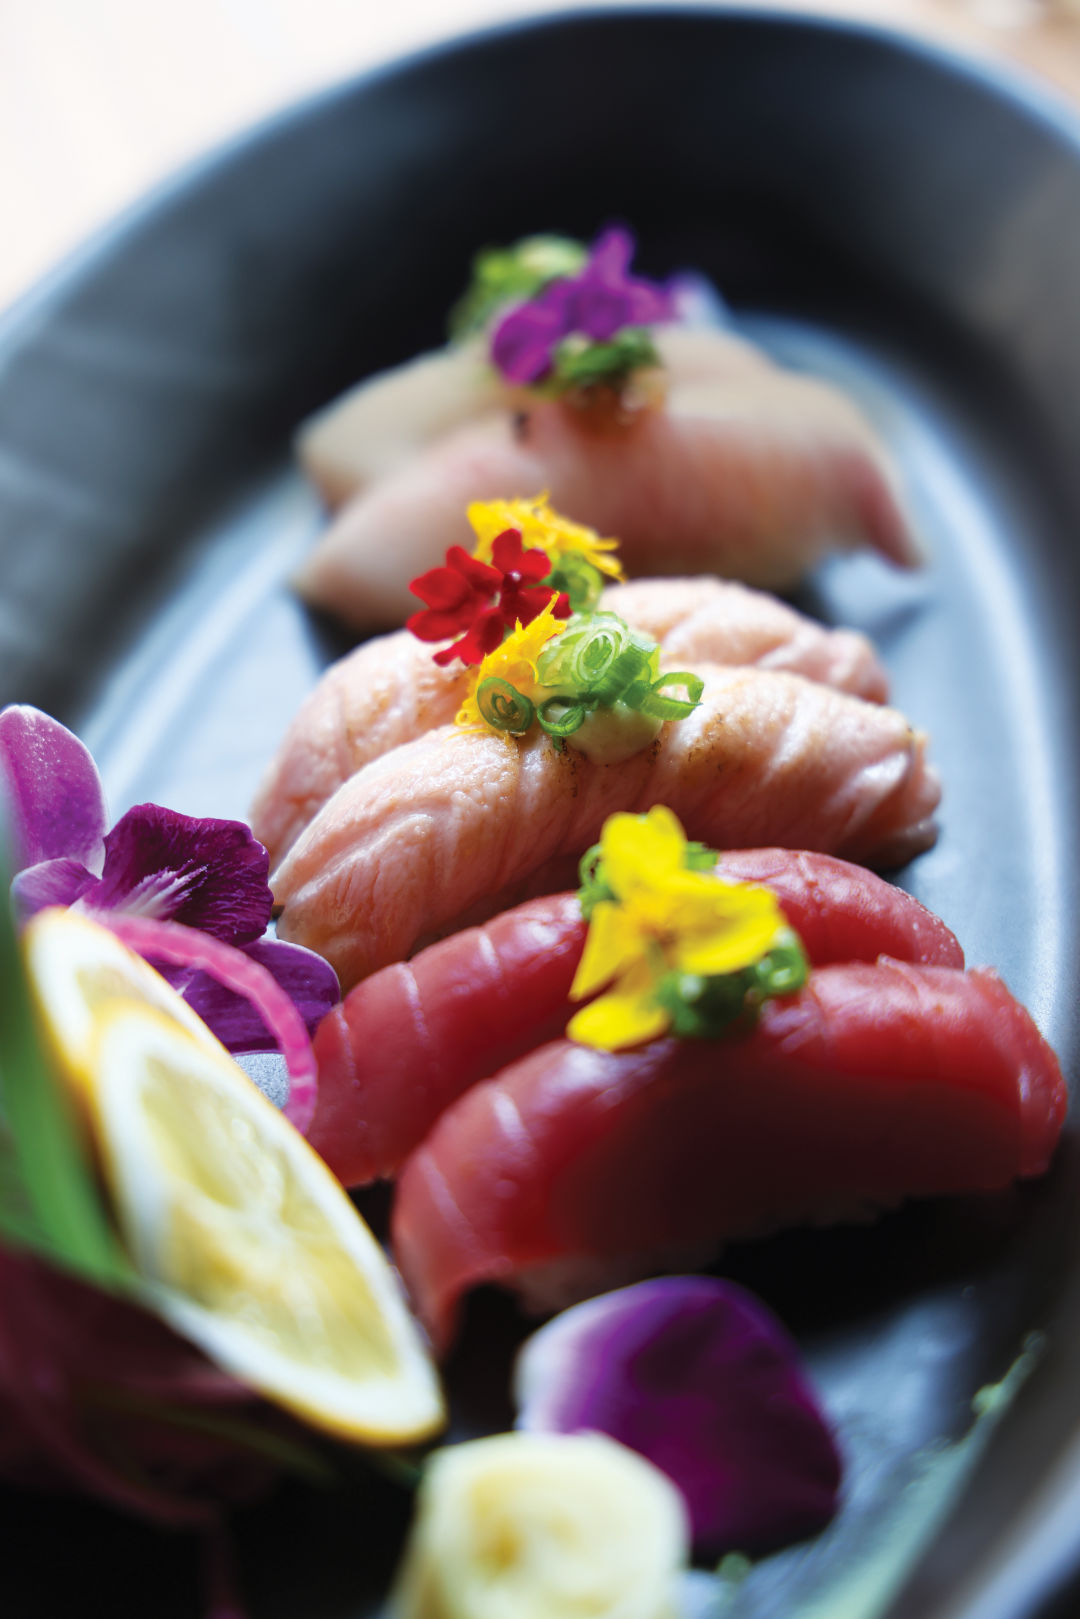 Kojo serves a variety of sushi, as well as other Japanese dishes.